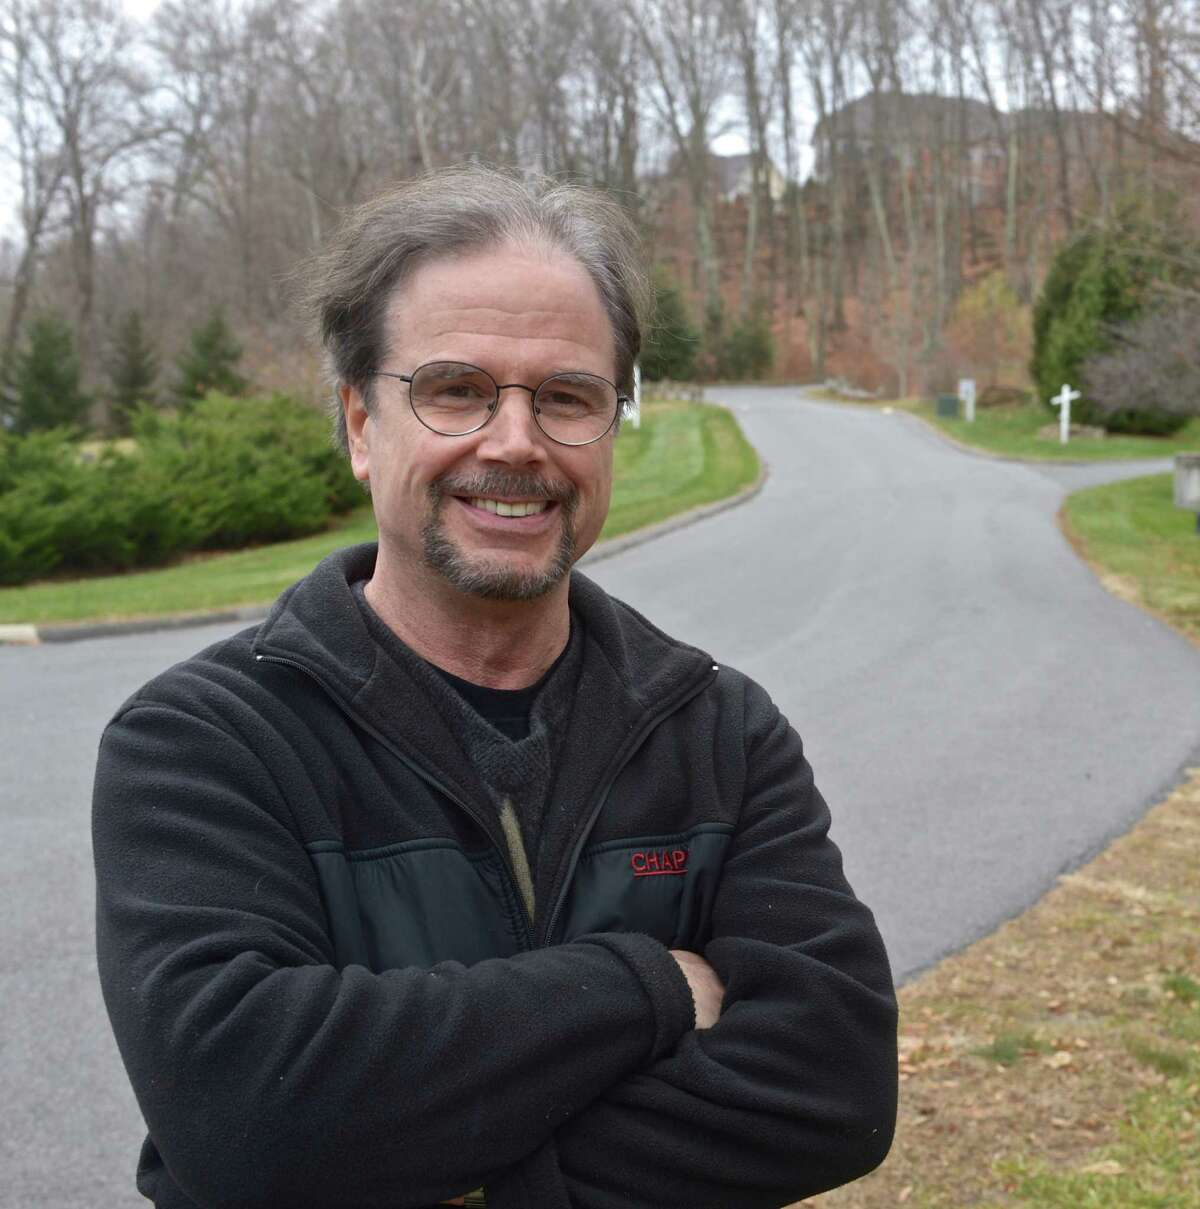 Developer John O'Bine stands at the entrance to the recently completed Park Glen, a 17-unit luxury active adult community in Northville, that he developed with John Delay. Wednesday, November 18, 2015, in New Milford, Conn.